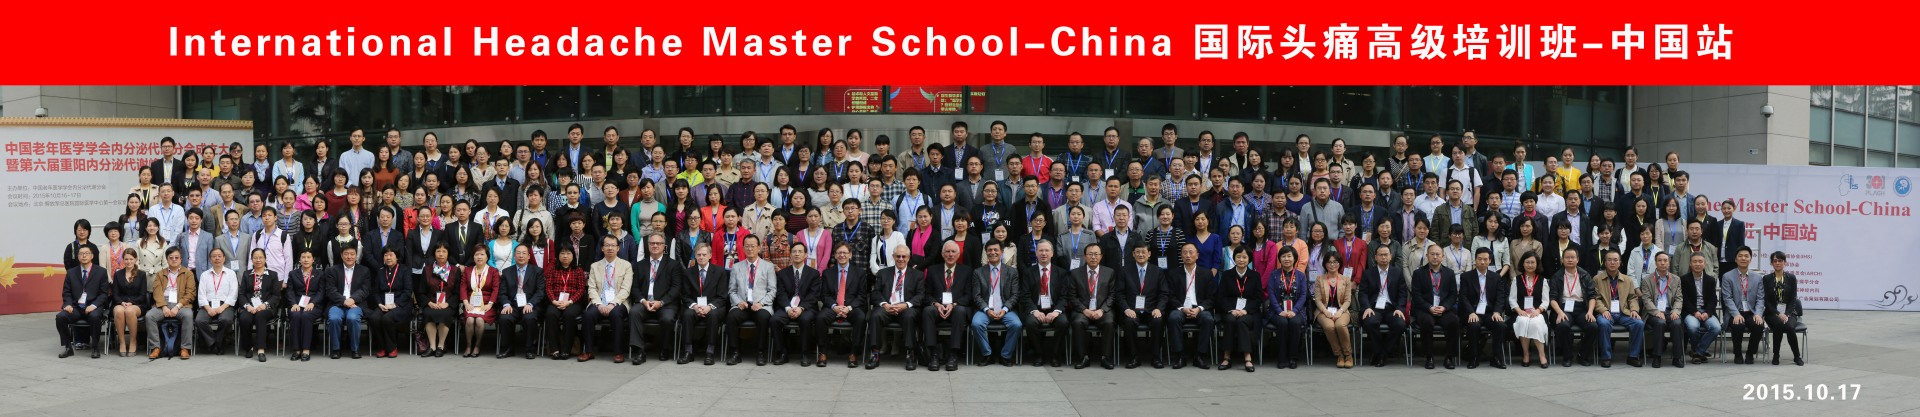 Group Photo- International Headache Master School China